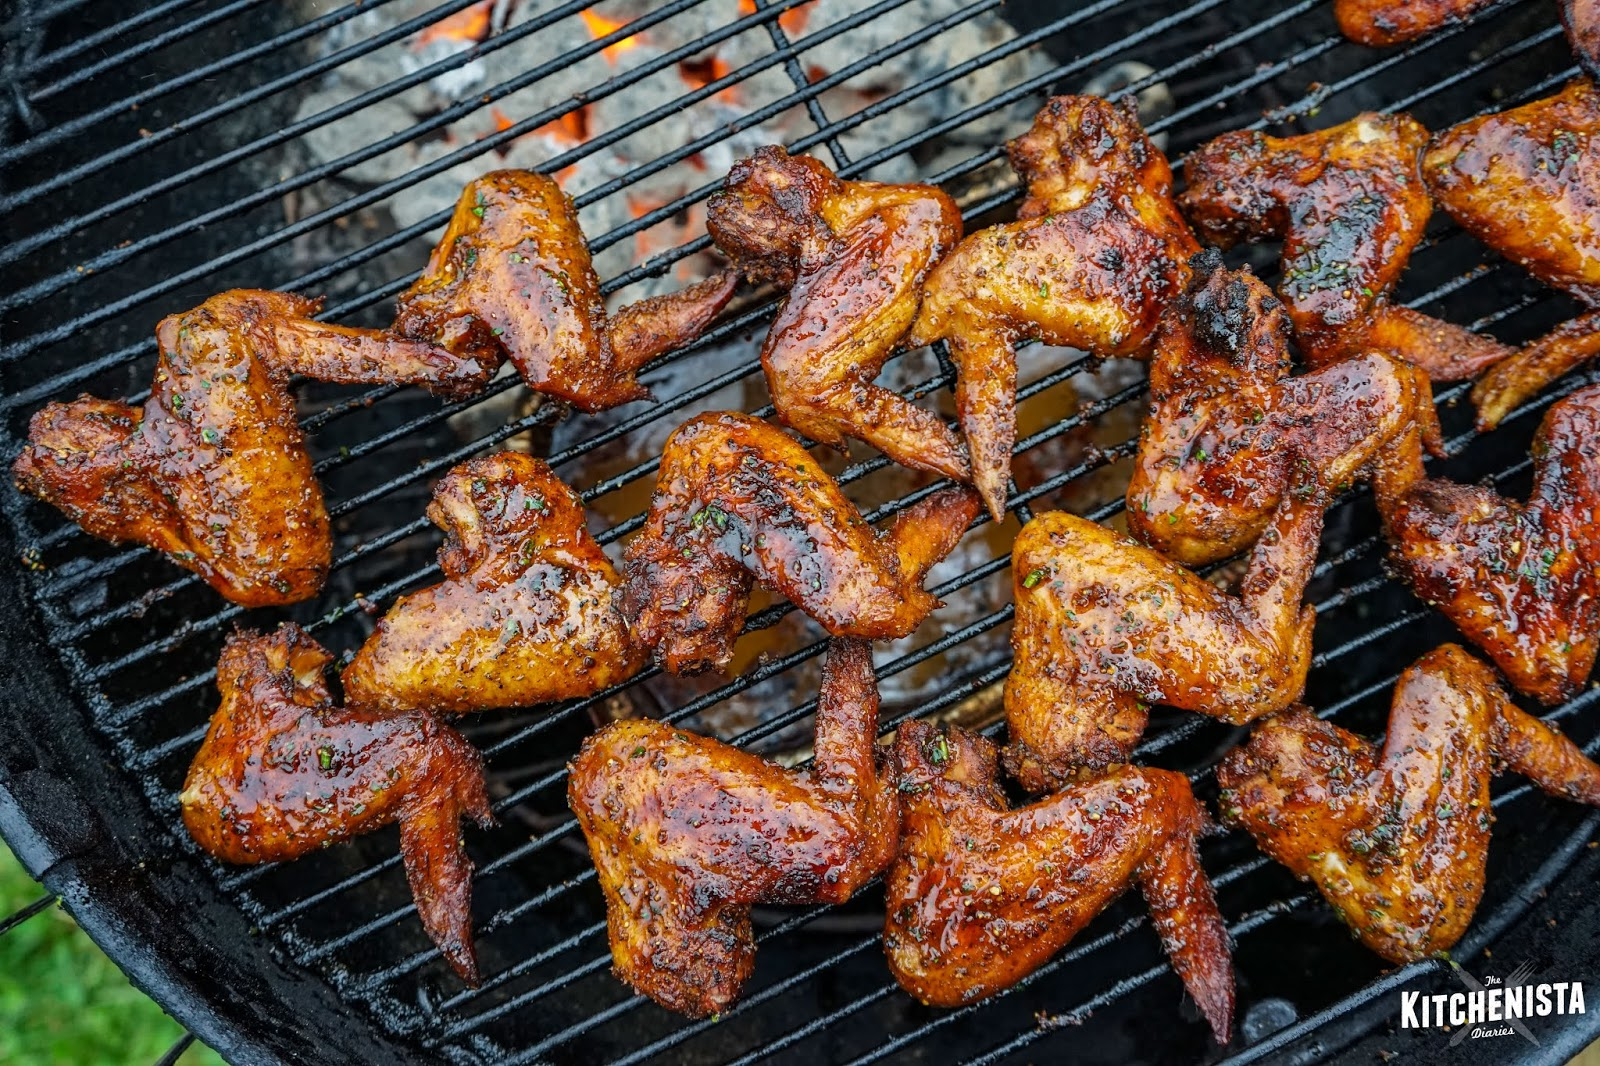 Grilled Lemon Pepper Wings - The Kitchenista Diaries